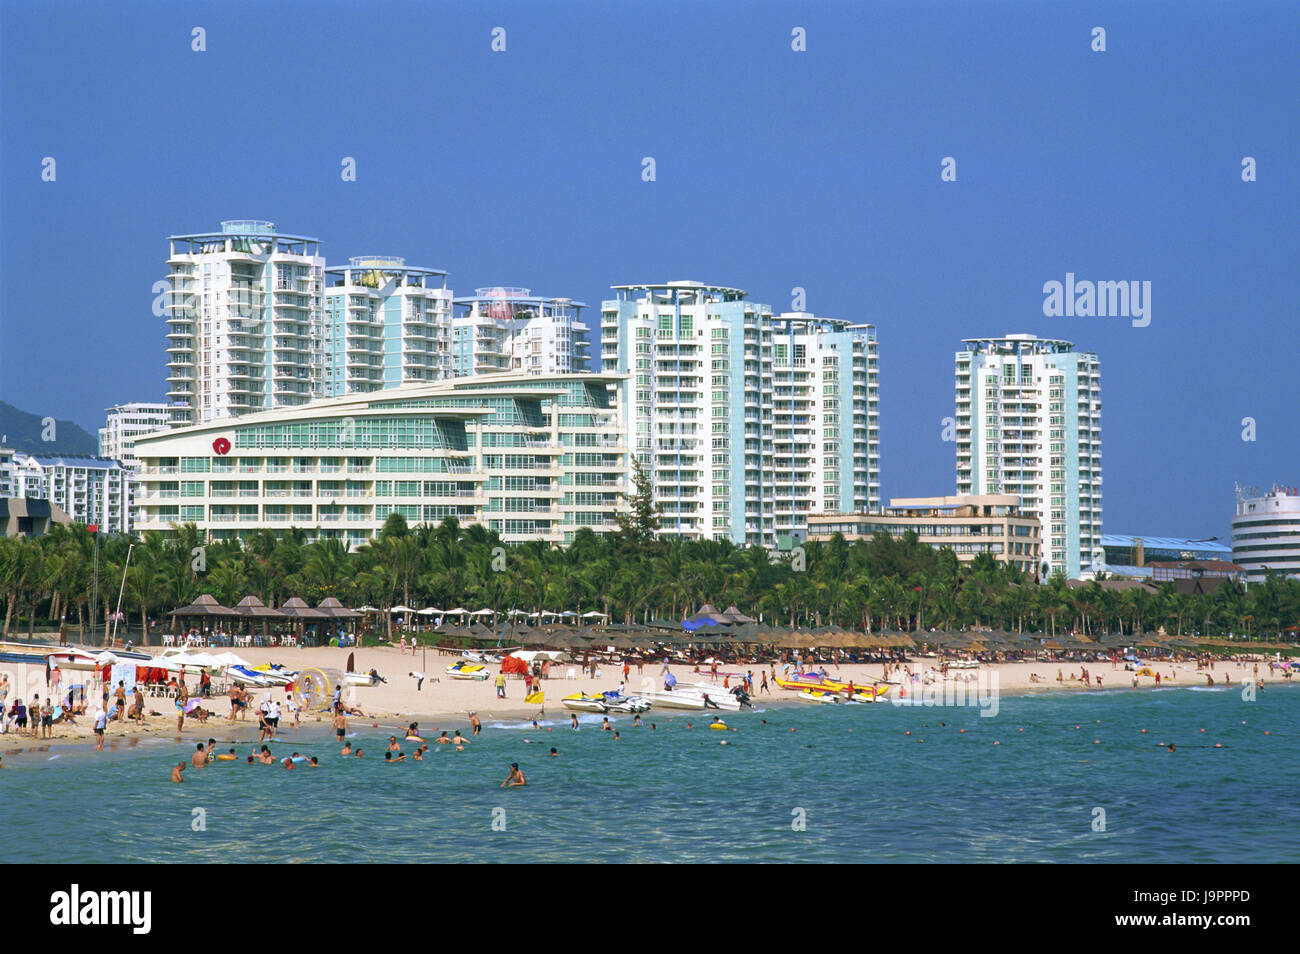 China,Hainan Iceland,Sanya,Dadonghai Beach,high rises,Asia,Eastern Asia,destination,beach,sandy beach,palms,people,vacationers,tourists,vacation,rest,beach - Stock Image